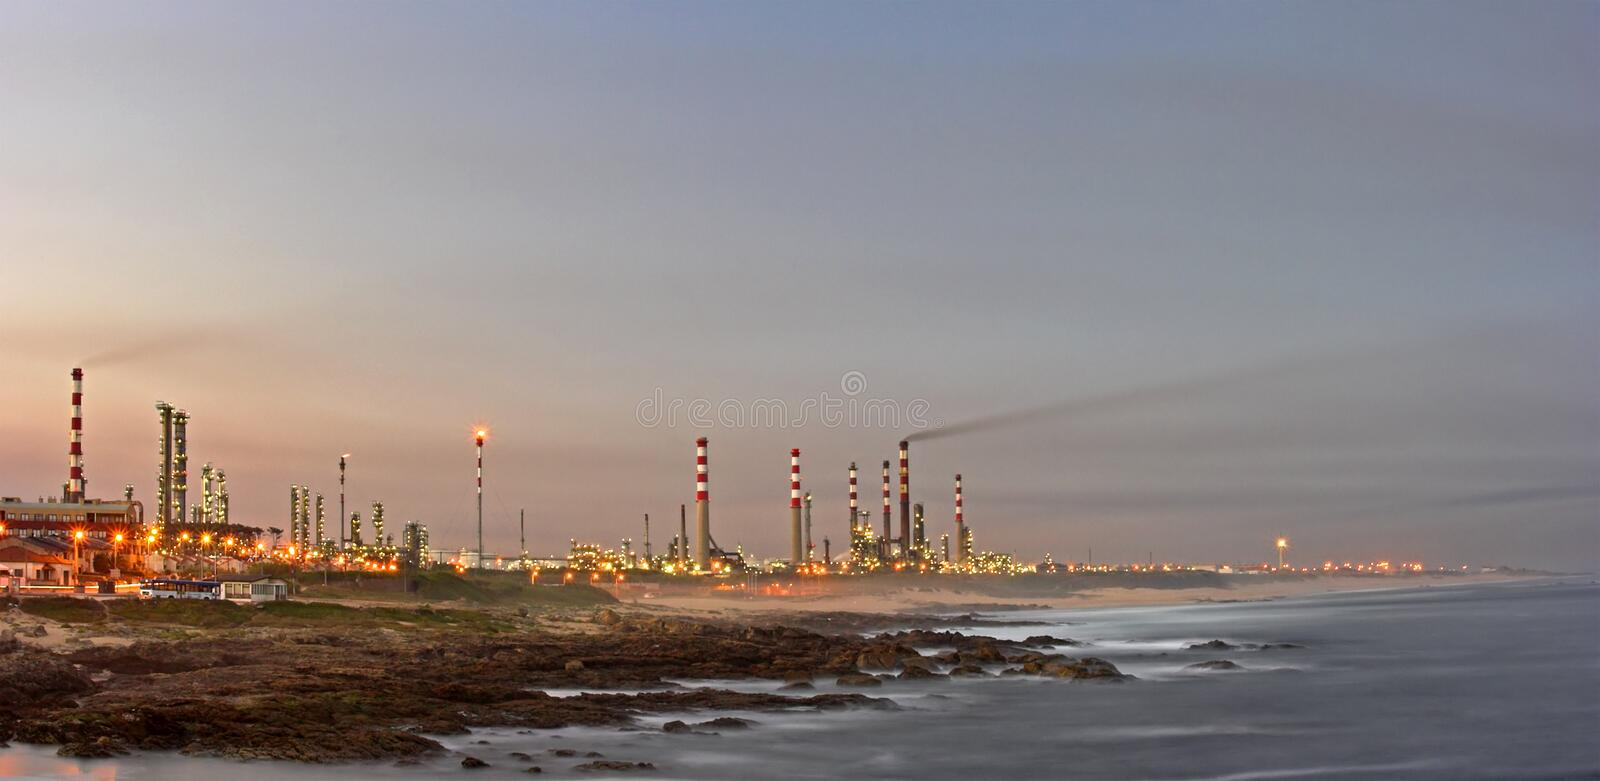 Oil refinery 3 royalty free stock photo